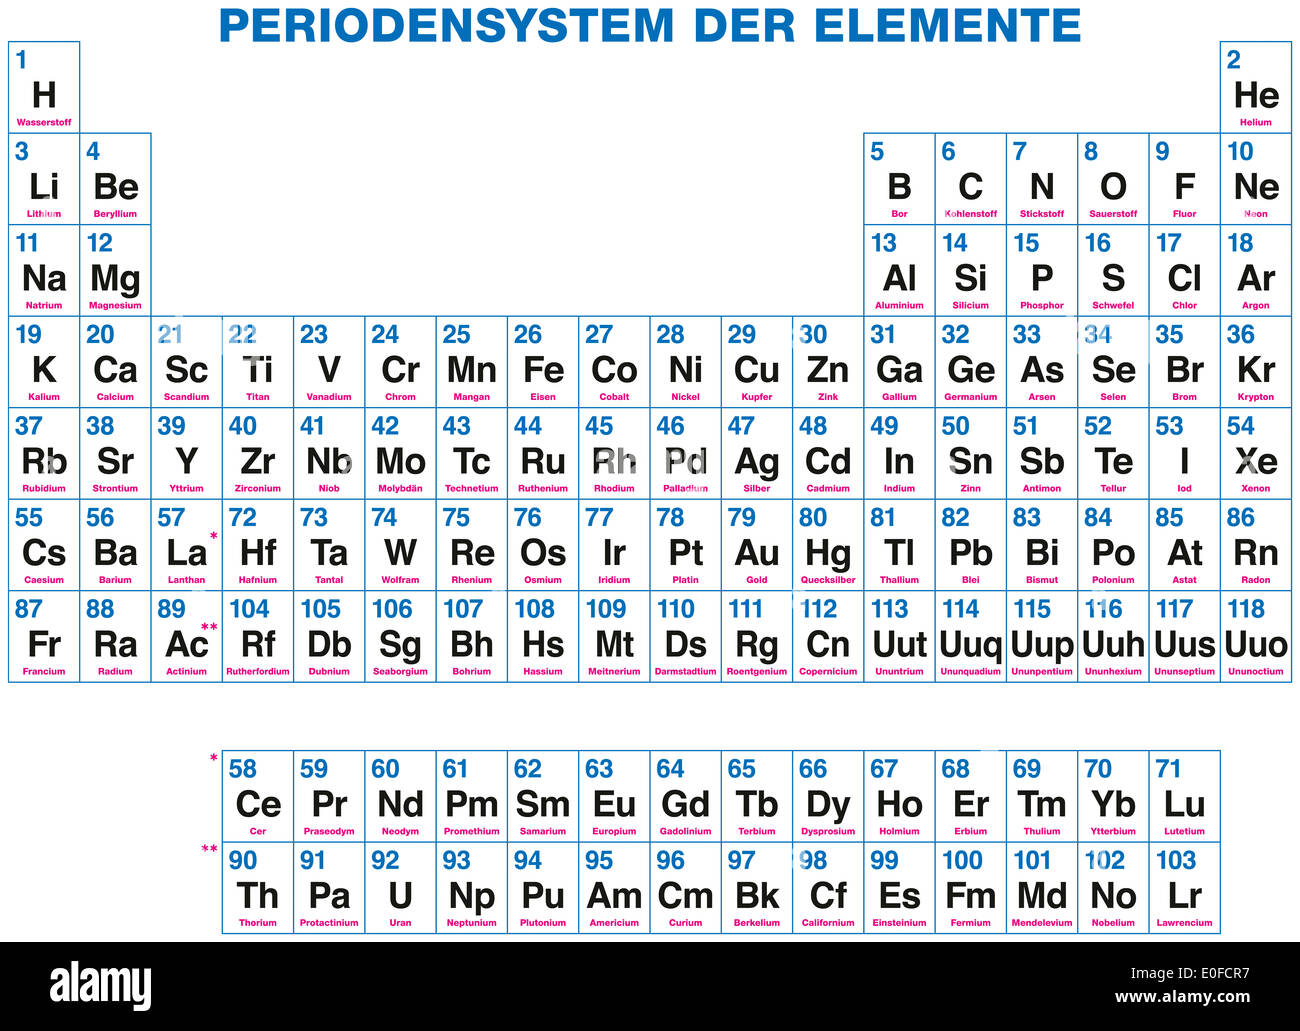 Periodic table of the elements german labeling 118 chemical periodic table of the elements german labeling 118 chemical elements organized on the gamestrikefo Gallery